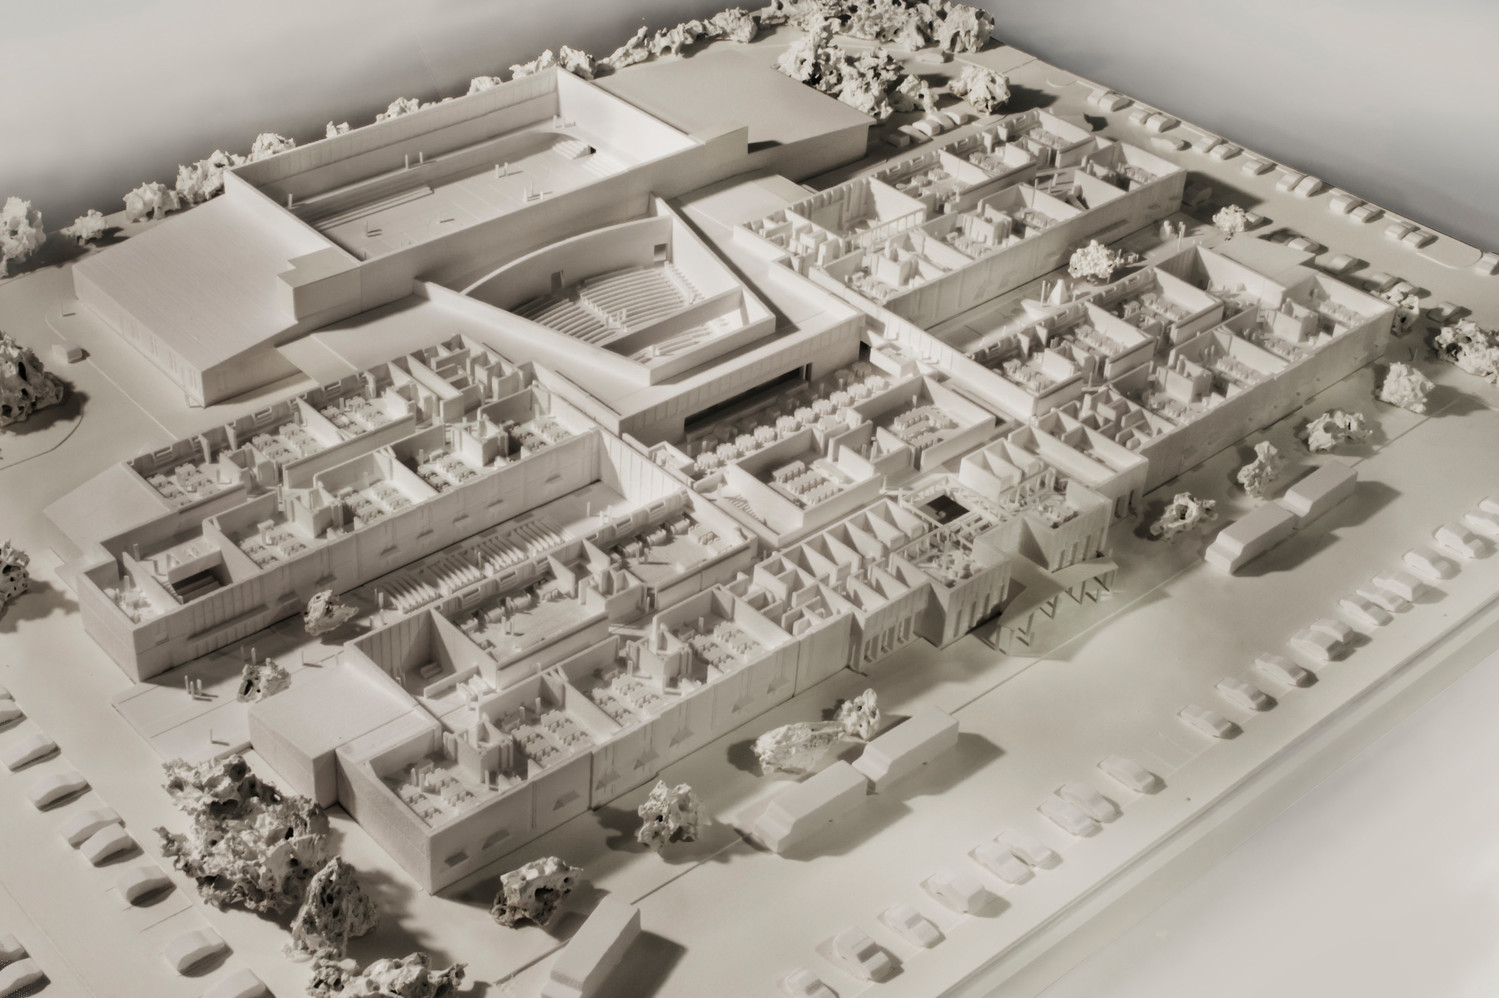 A model of the proposed grade 5-12 school to be built on the site of the contaminated Westport Middle School